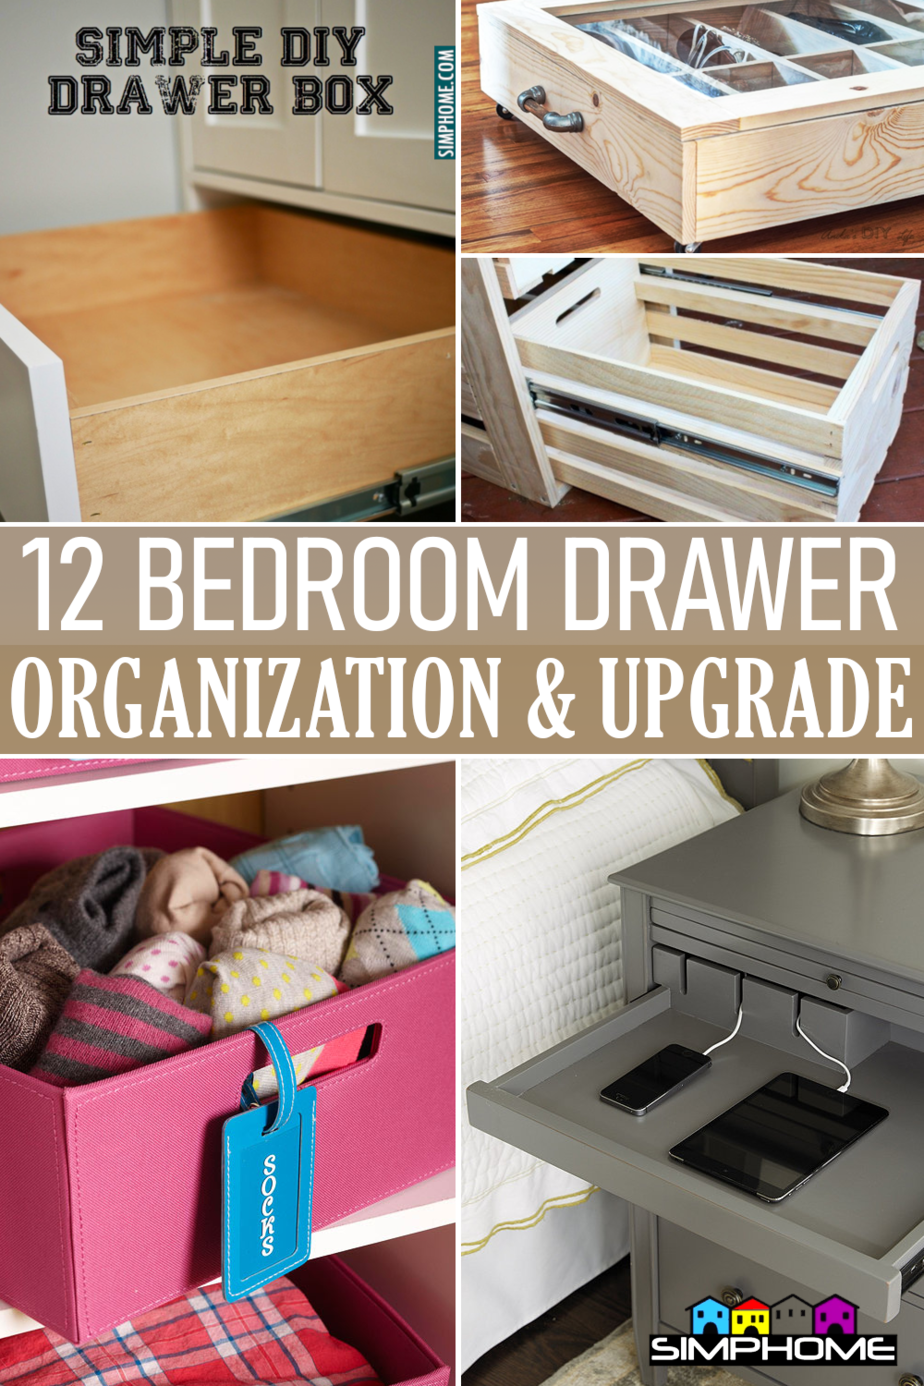 Bedroom Drawer and Organization via Simphome.comFeatured Thumb